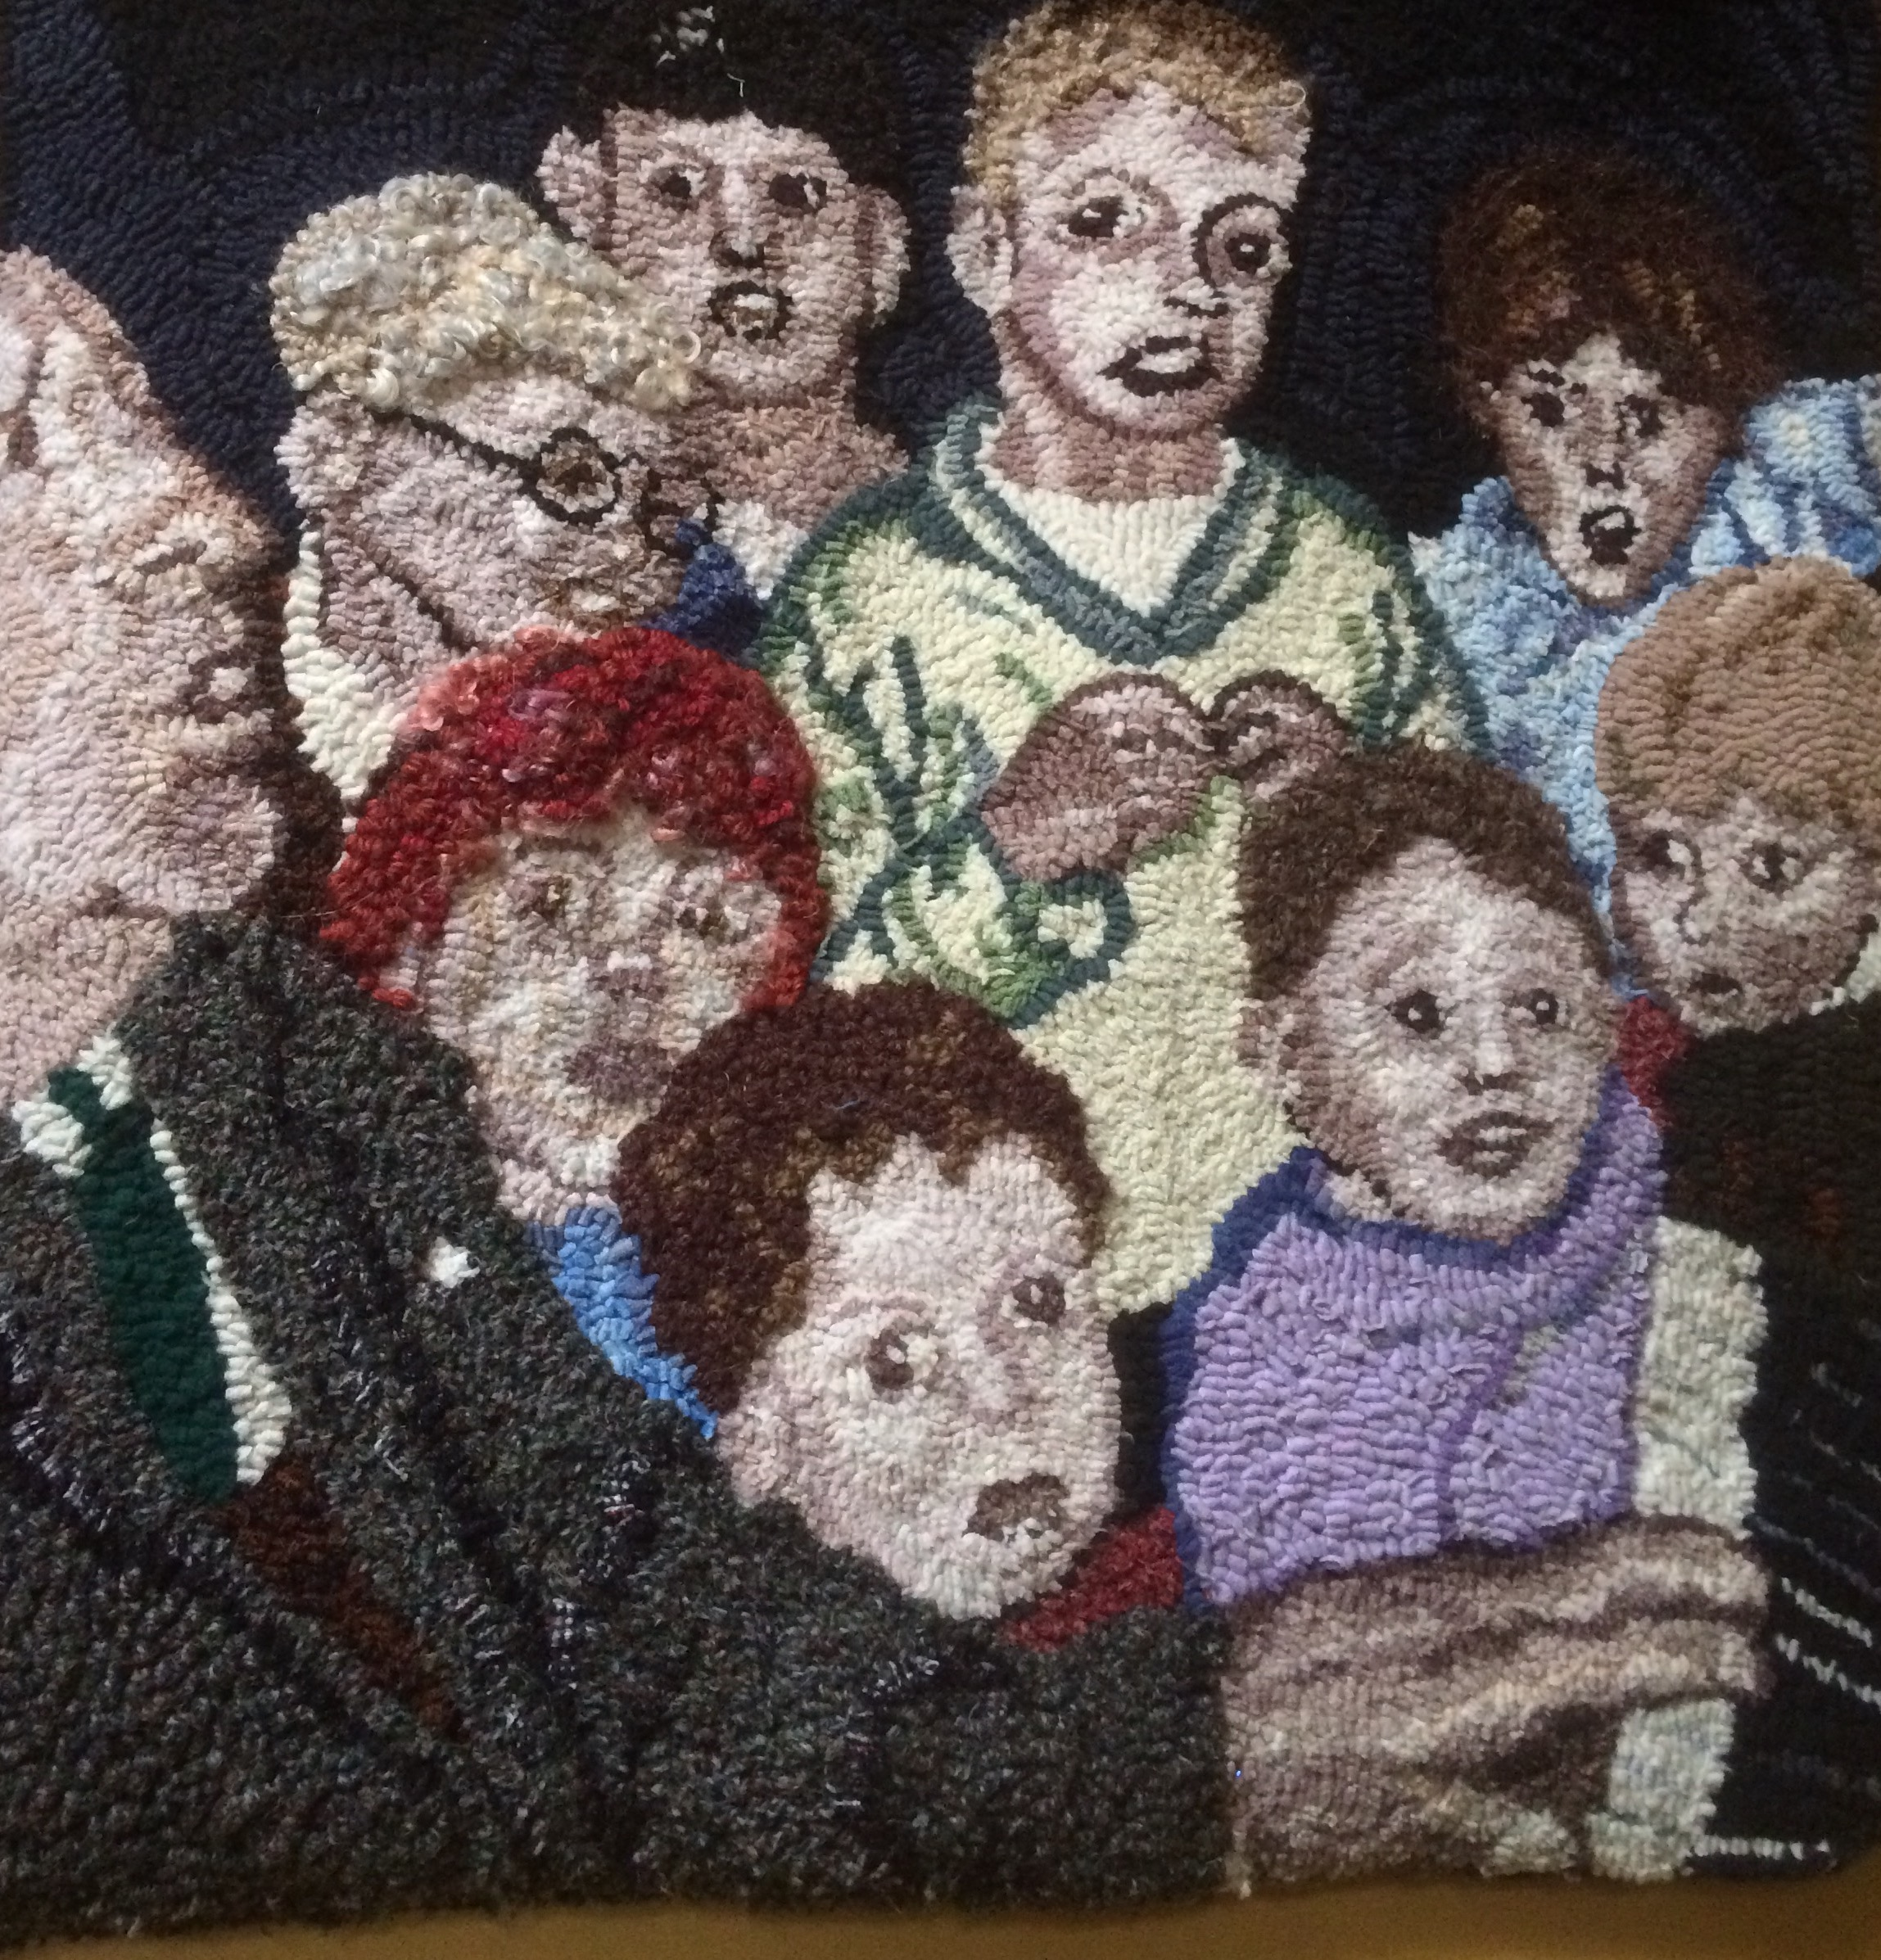 Man playing the piano with children rag rug artwork made by Heather Ritchie